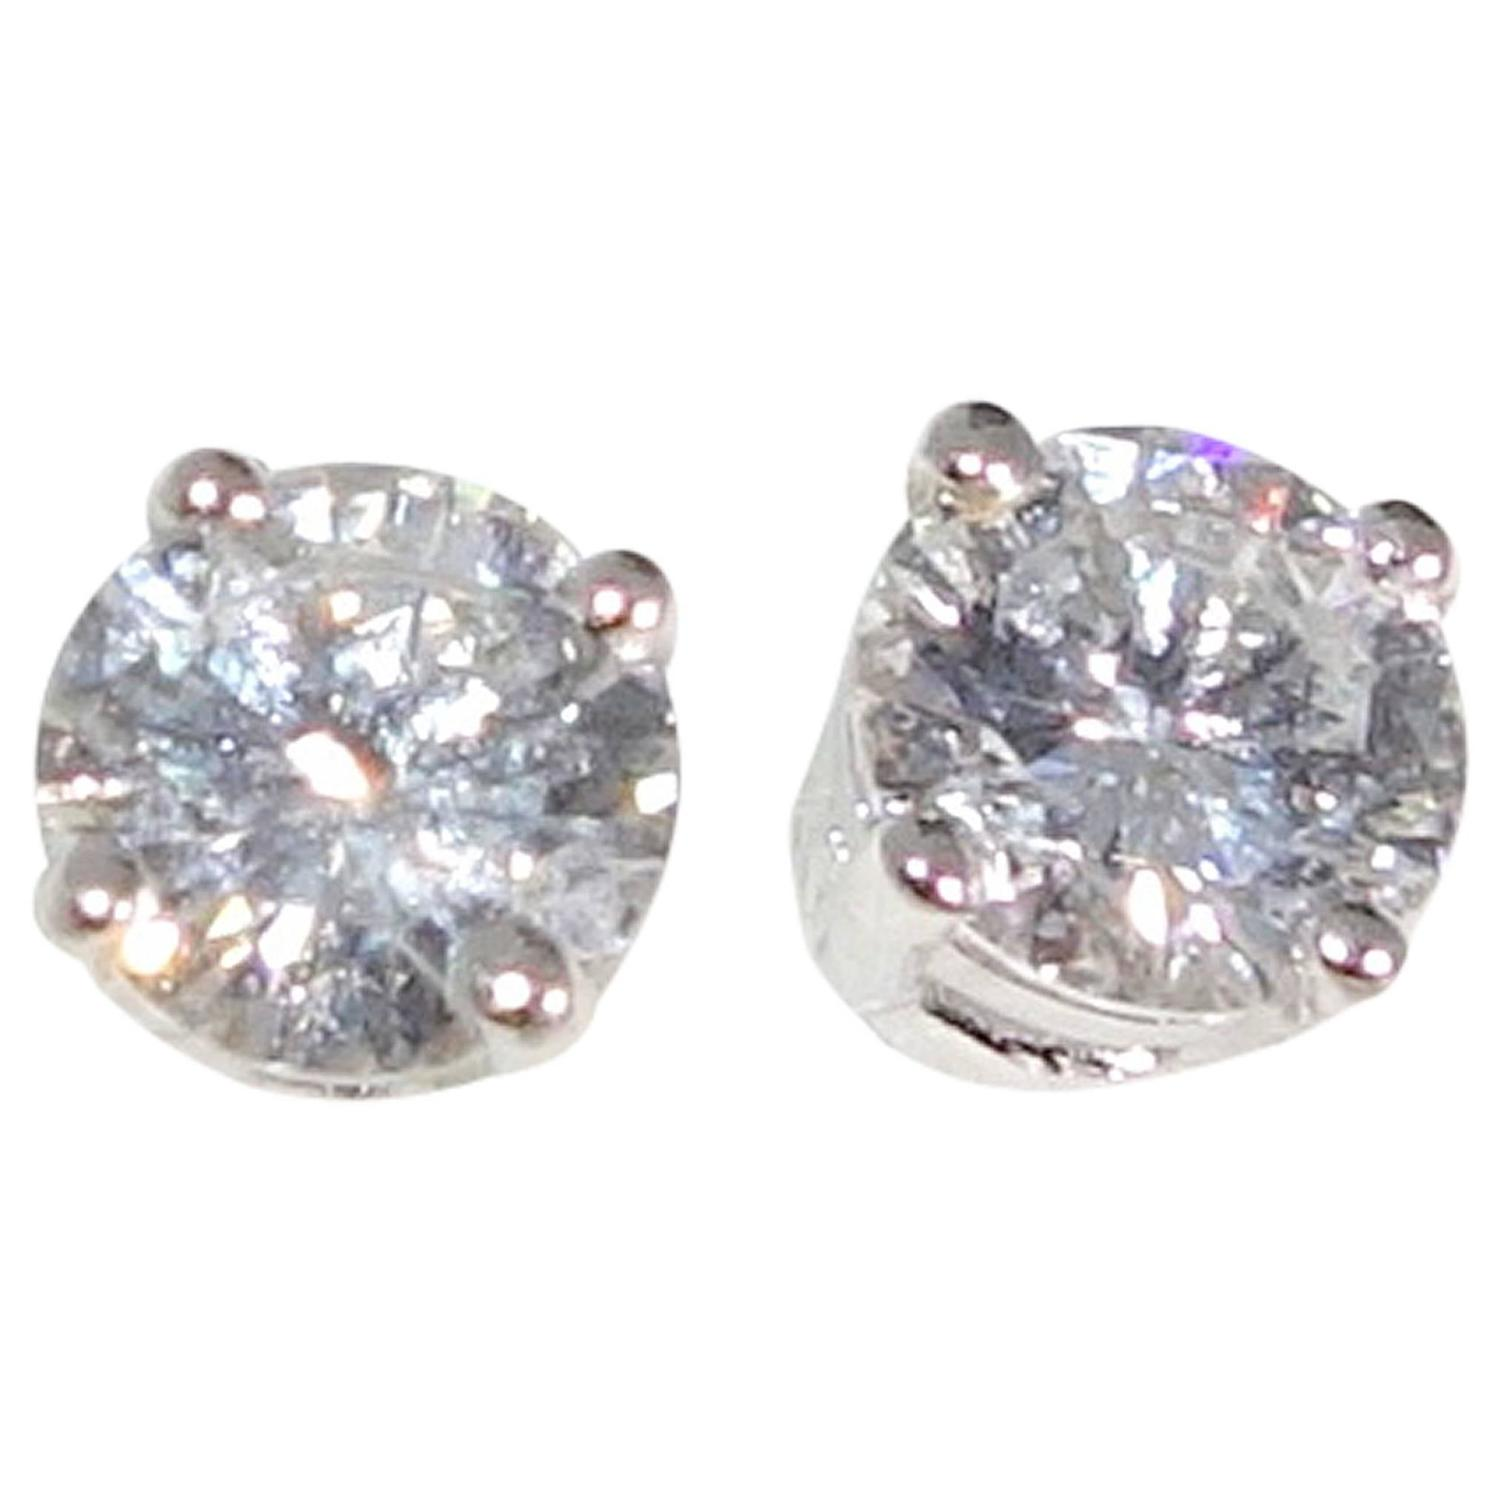 Pierre Famille Diamond Gold Stud Earrings For Sale at 1stdibs